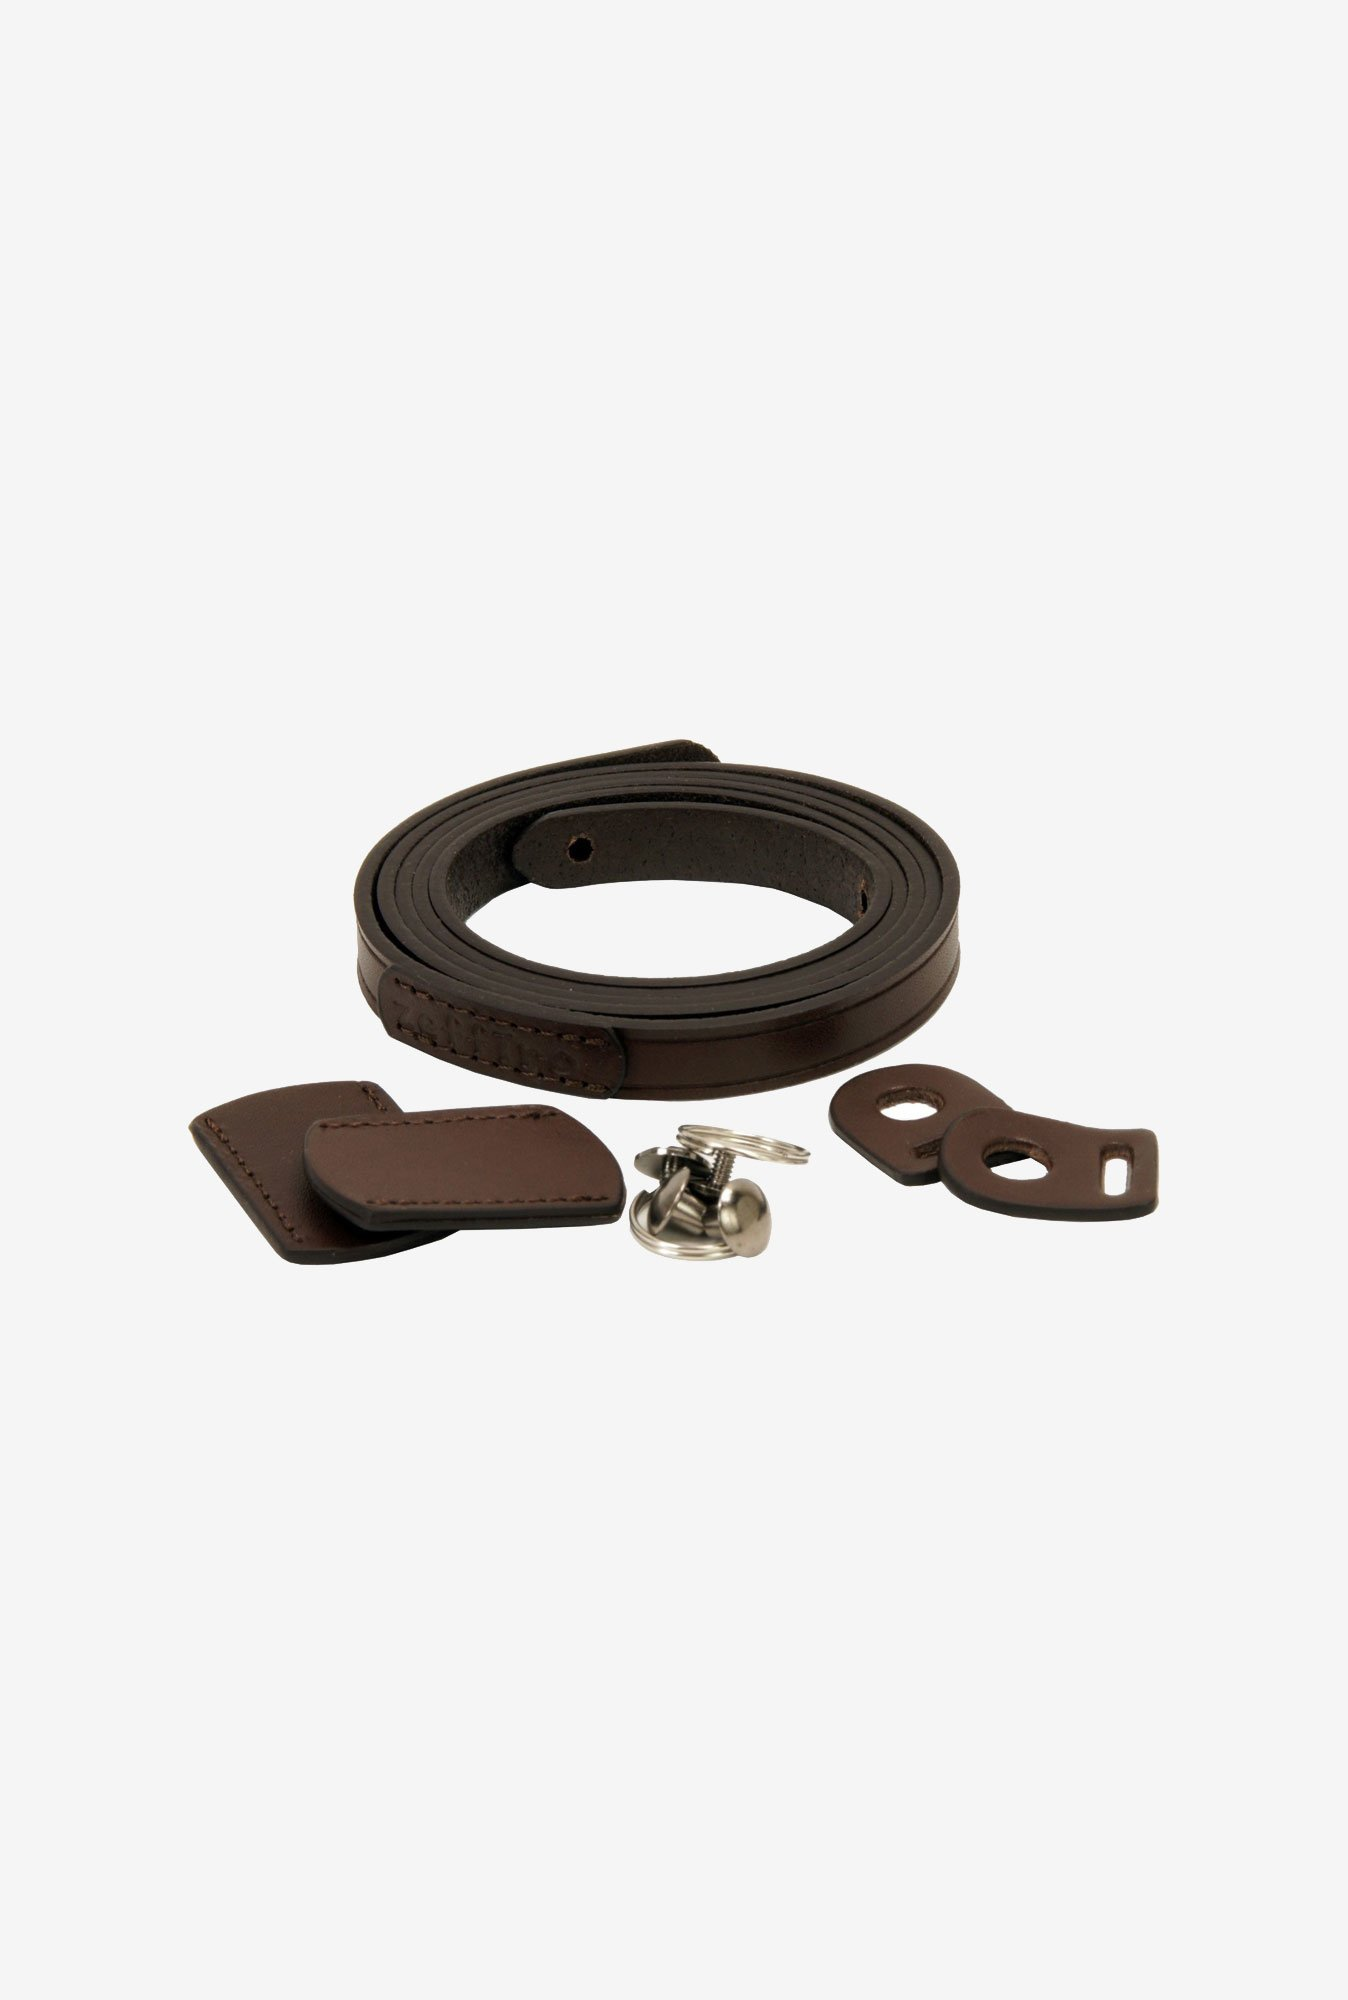 Zeffiro Whole Leather Camera Shoulder Strap (Dark Brown)